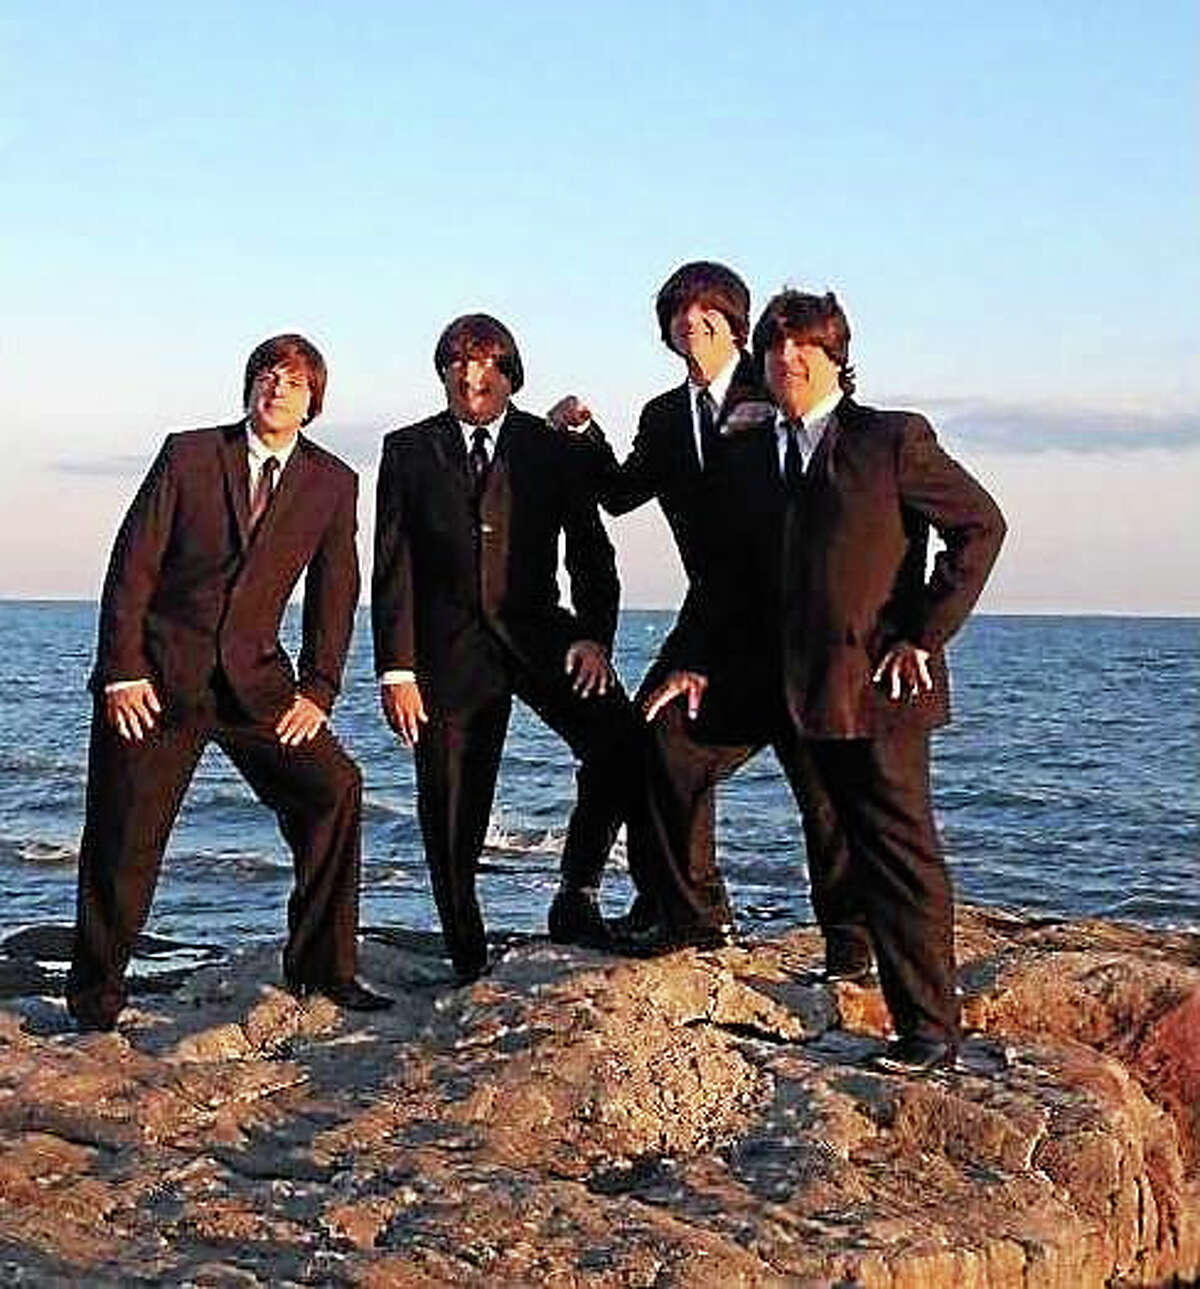 Contributed photos The Beatles tribute band, Ticket to Ride, will perform on John Lennon's 75th birthday, Oct. 9, at Bridge Street Live in Collinsville.